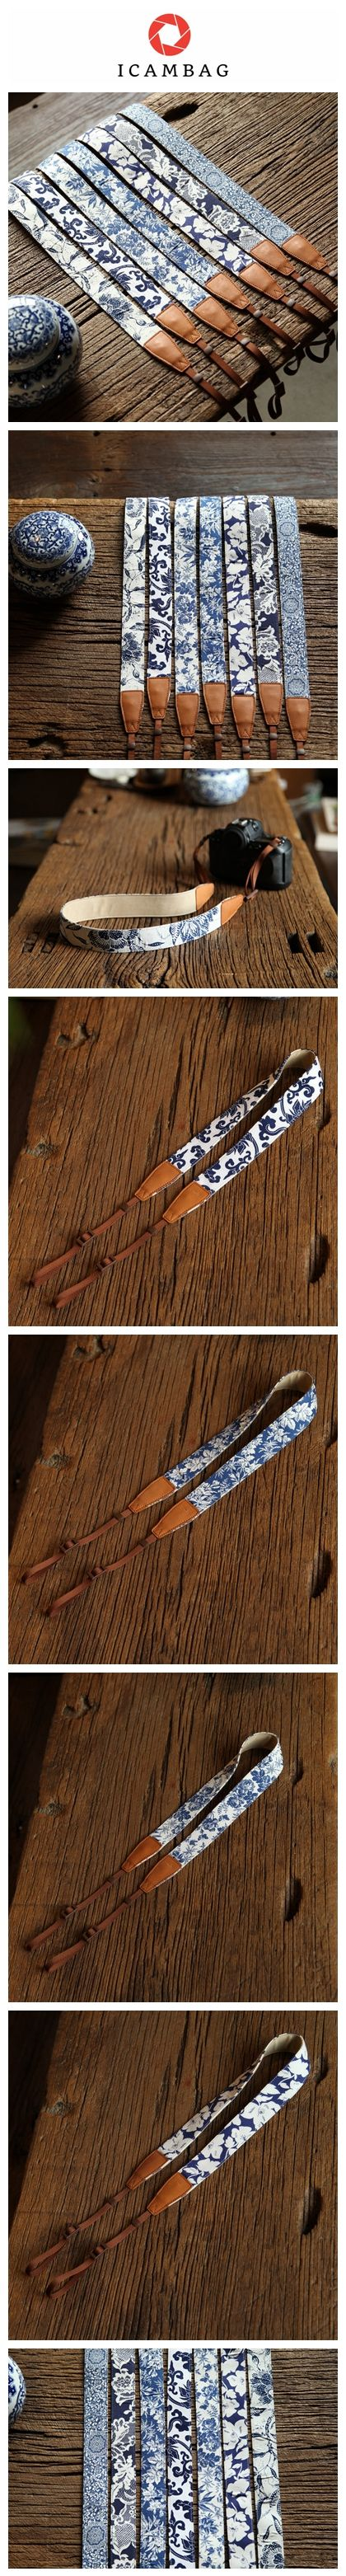 Blue and white Porcelain Cowboy DSLR Strap lovely strap Handmade Leather Camera Strap Brown CS074 Handmade with top layer cow leather and denim. It can fit almost every DSLR, SLR and some larger digit